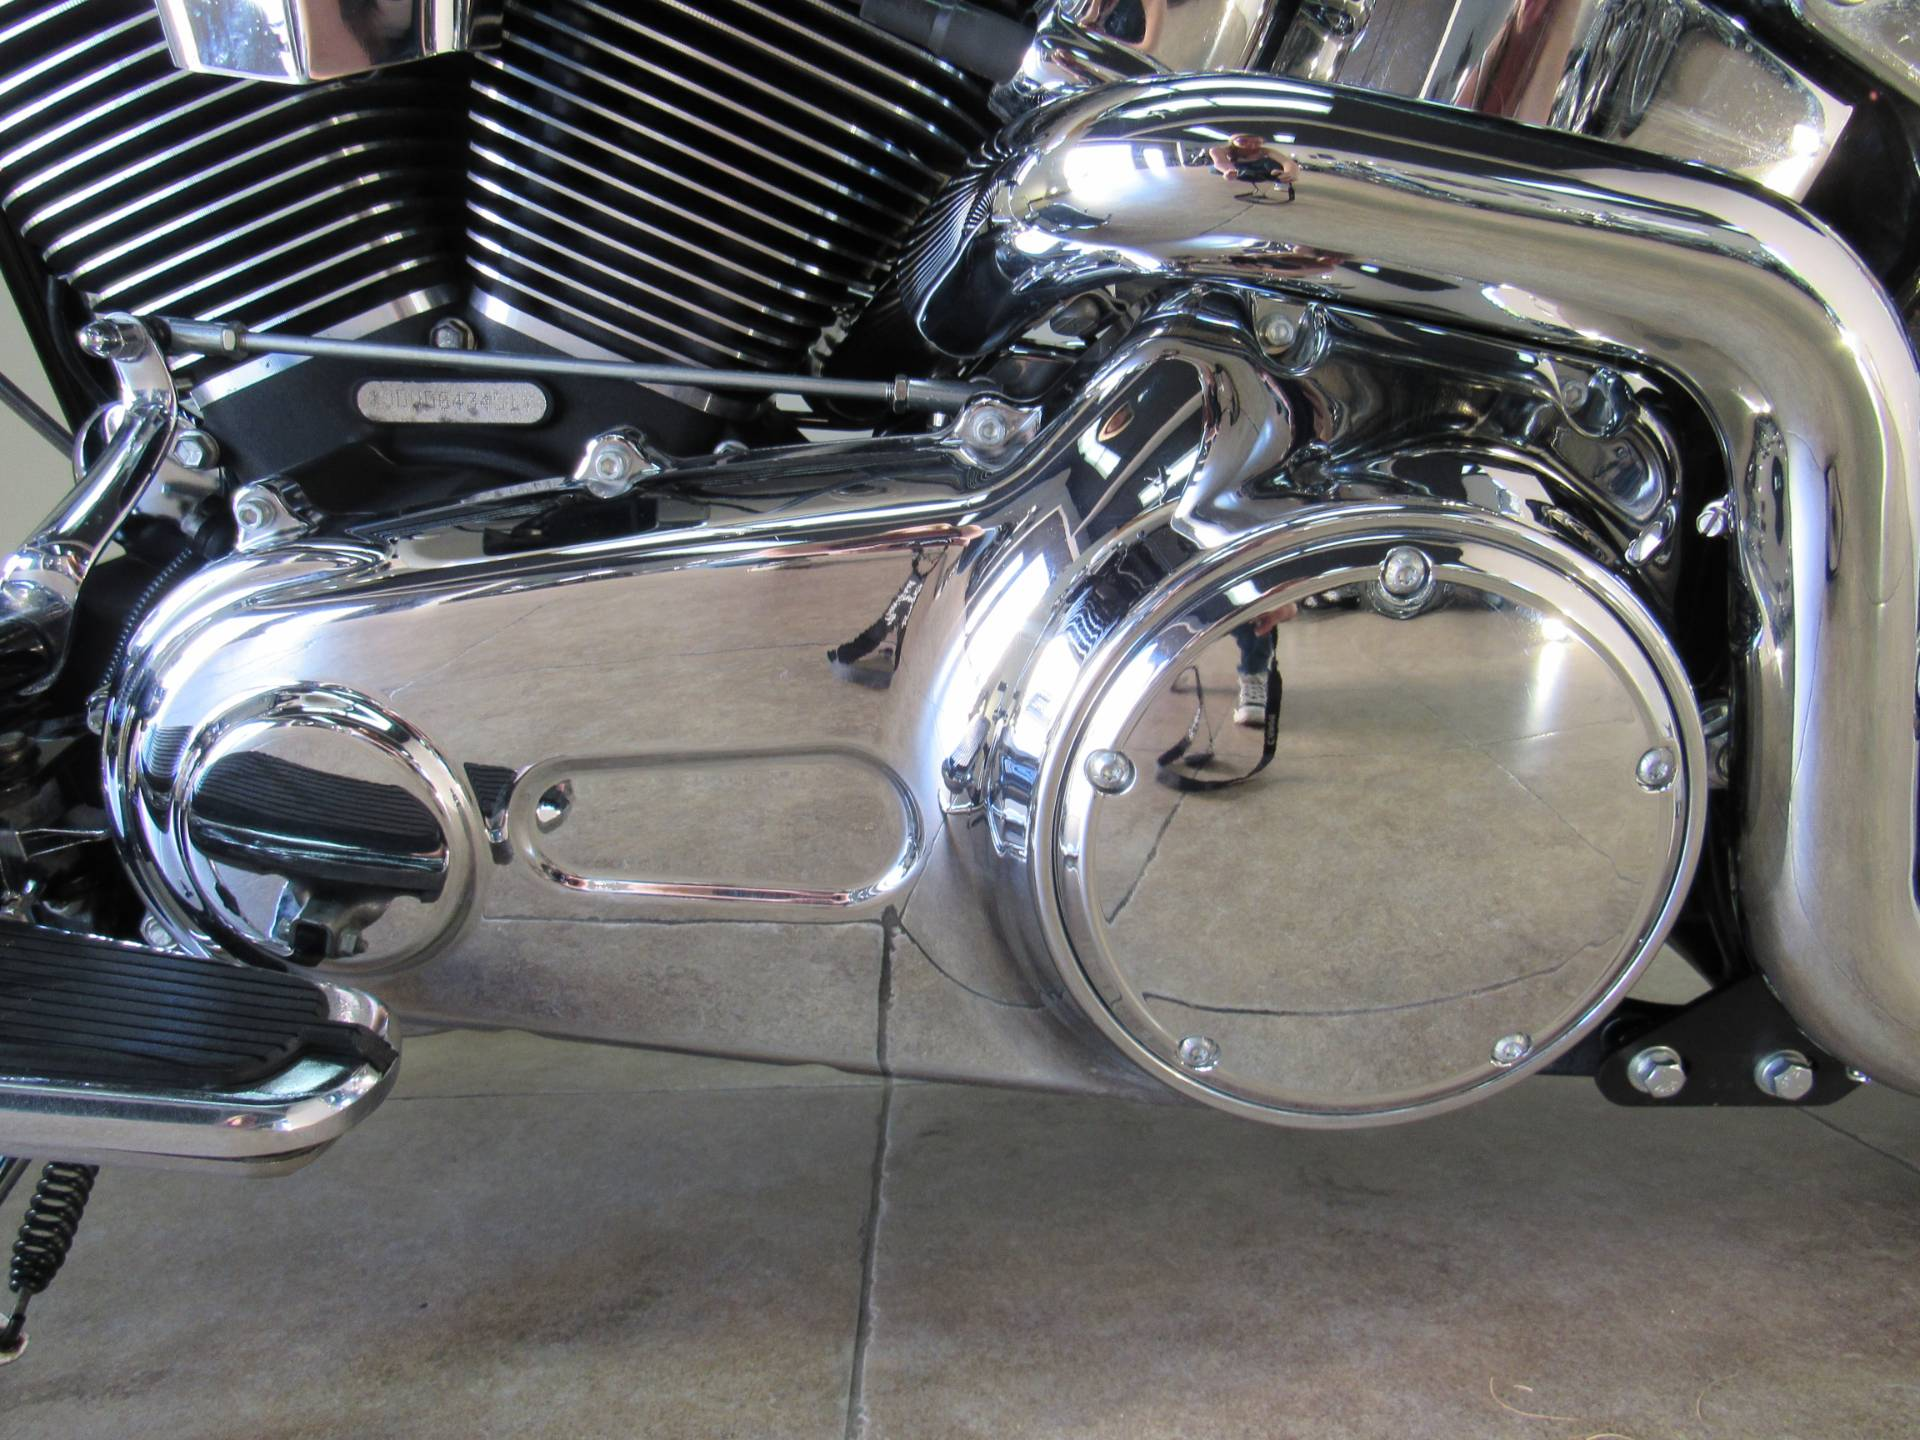 2013 Harley-Davidson Softail® Deluxe in Temecula, California - Photo 20